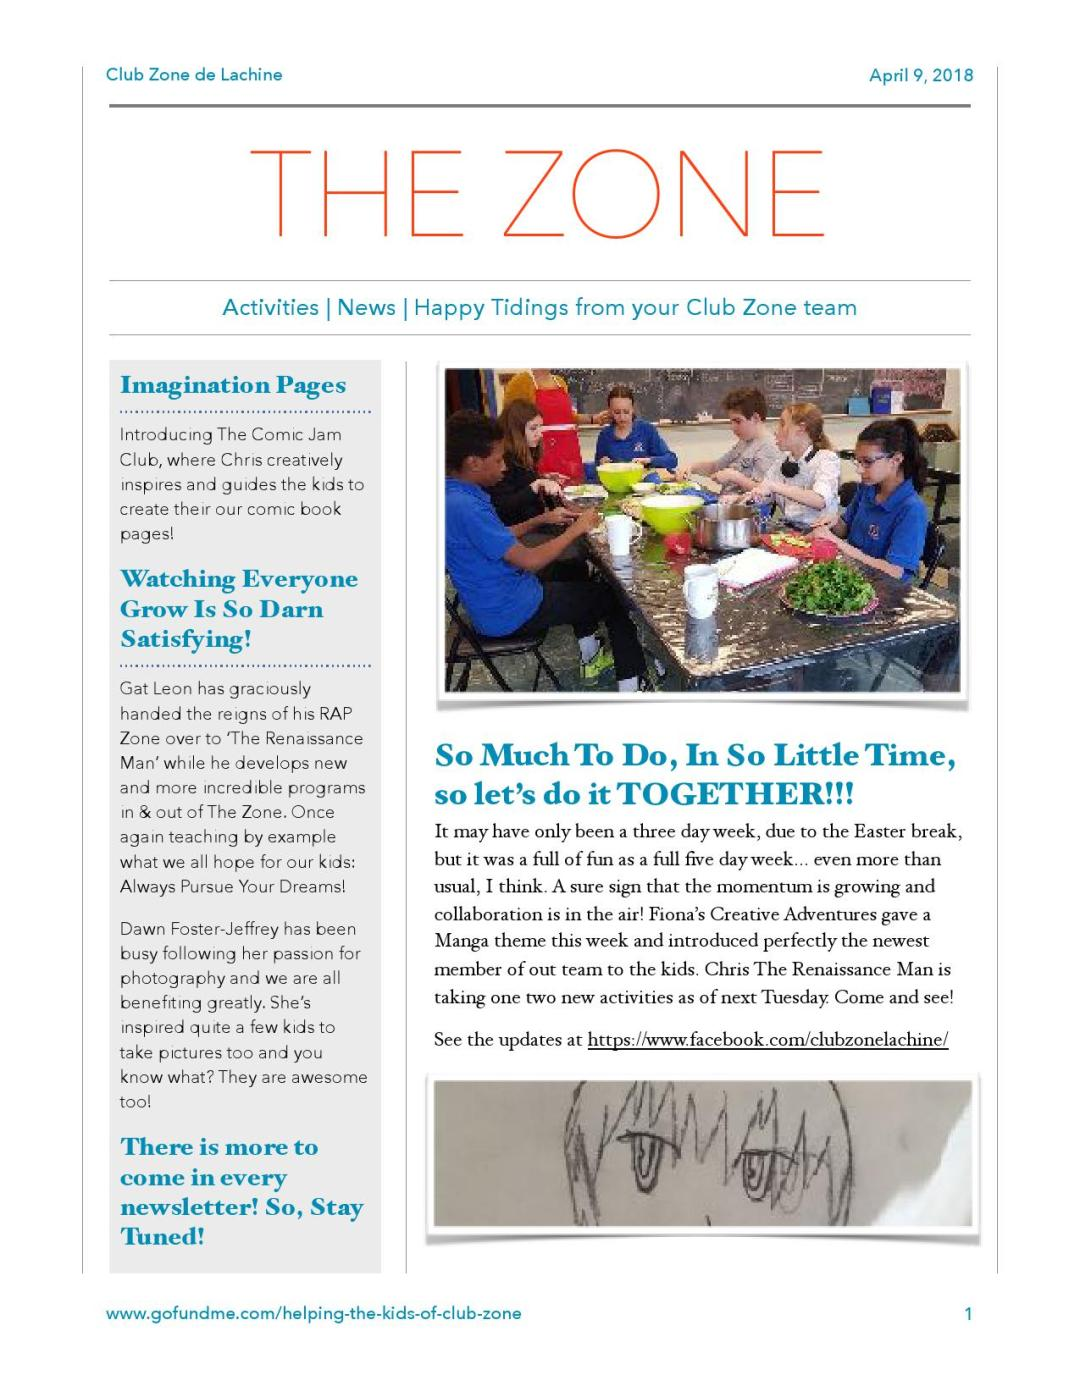 Club Zone Newsletter 2018-04-09_1